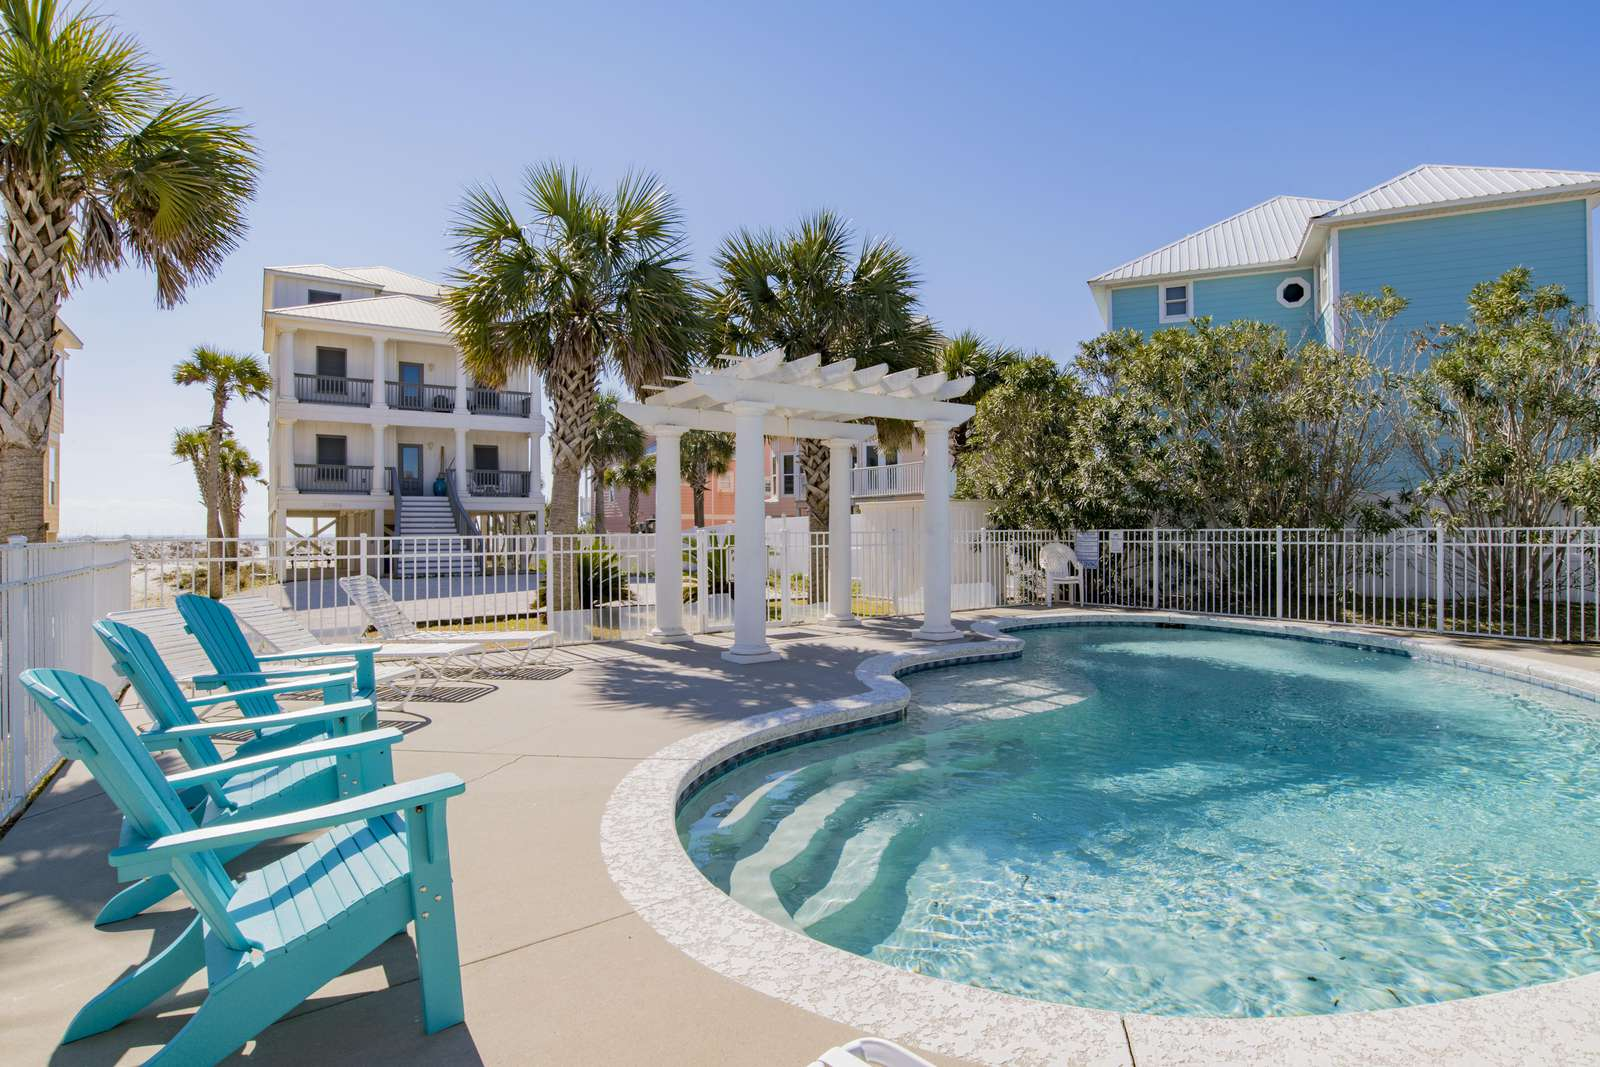 Private Pool only for this house only. (Romar House at Beachside -23306 Perdido Beach Blvd Orange Beach AL)